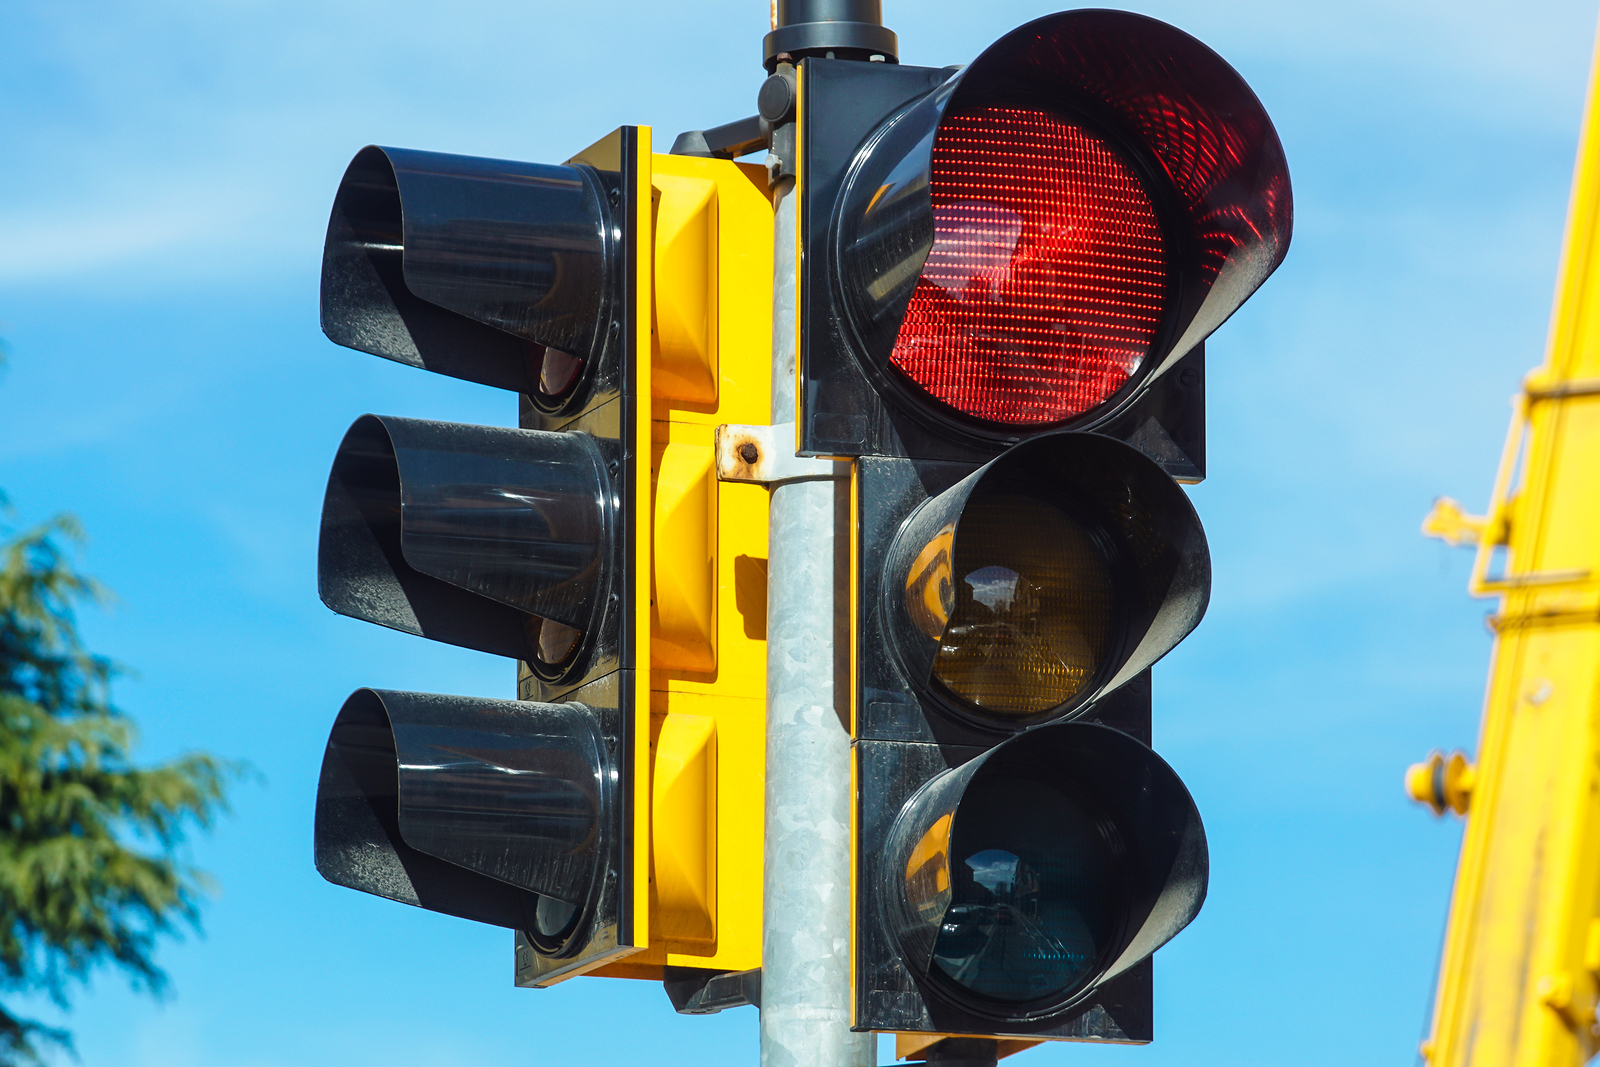 Running Red Lights and Car Accidents